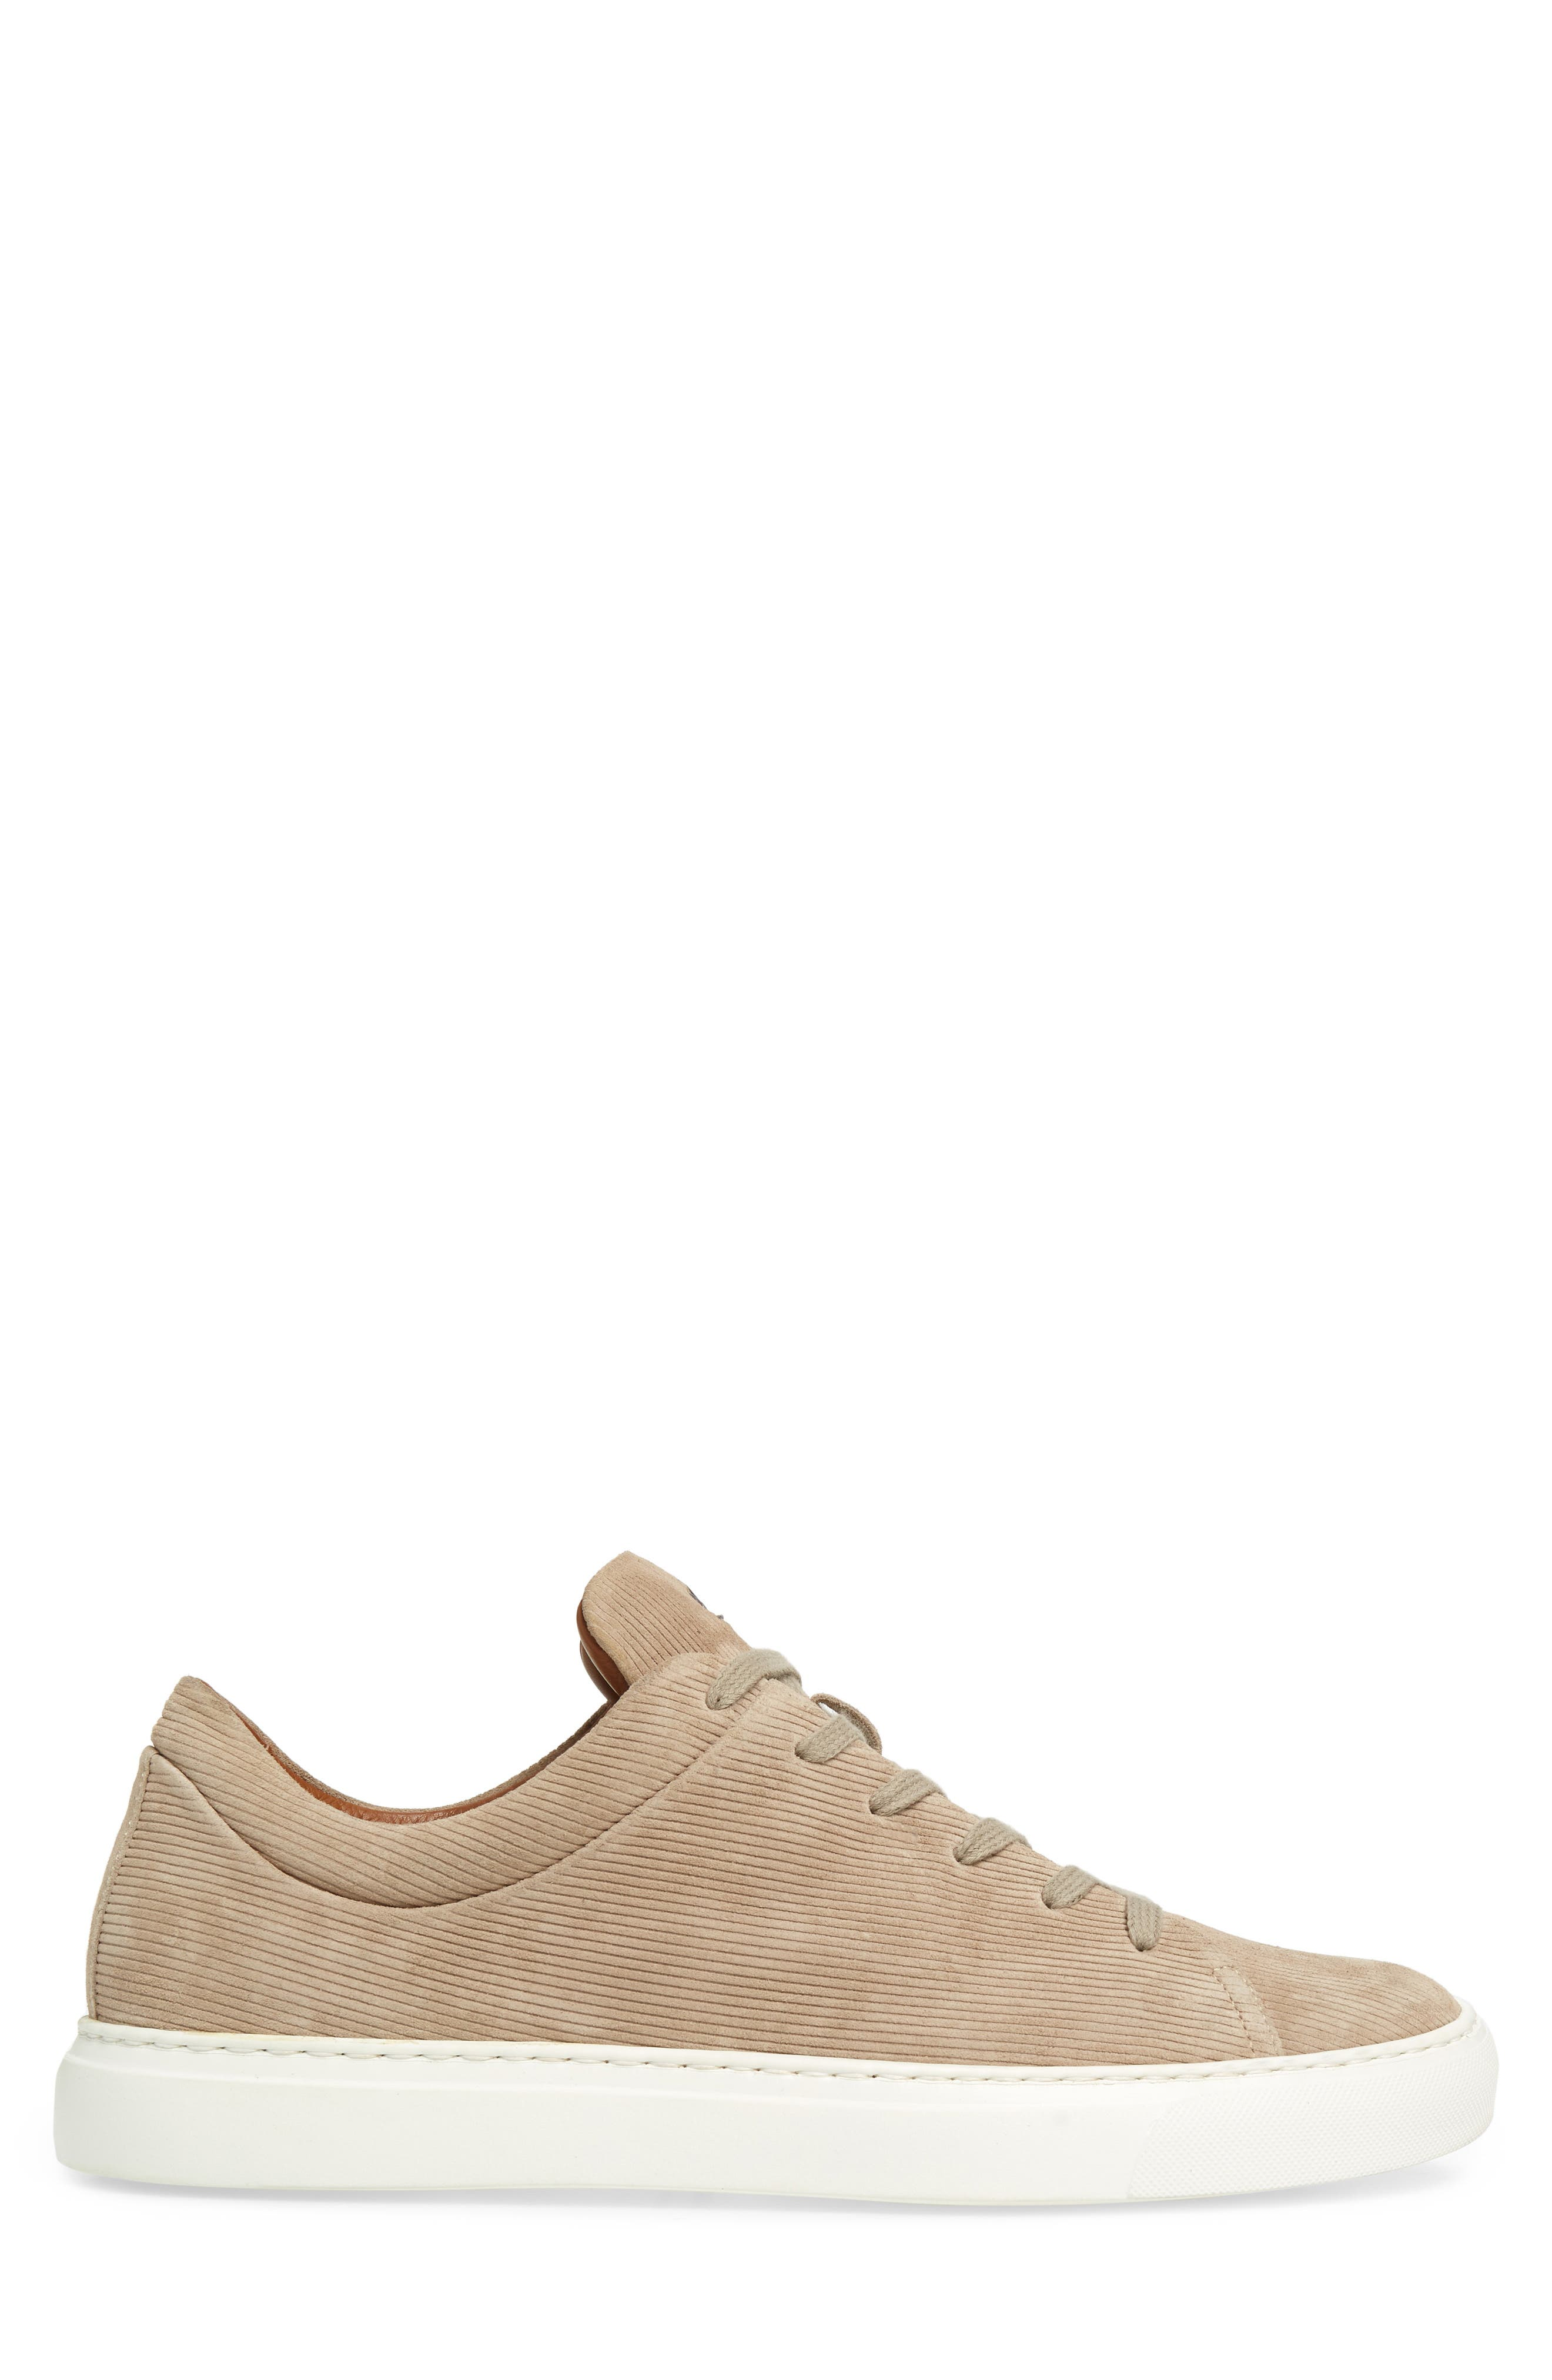 Alaric Sneaker,                             Alternate thumbnail 3, color,                             SAND